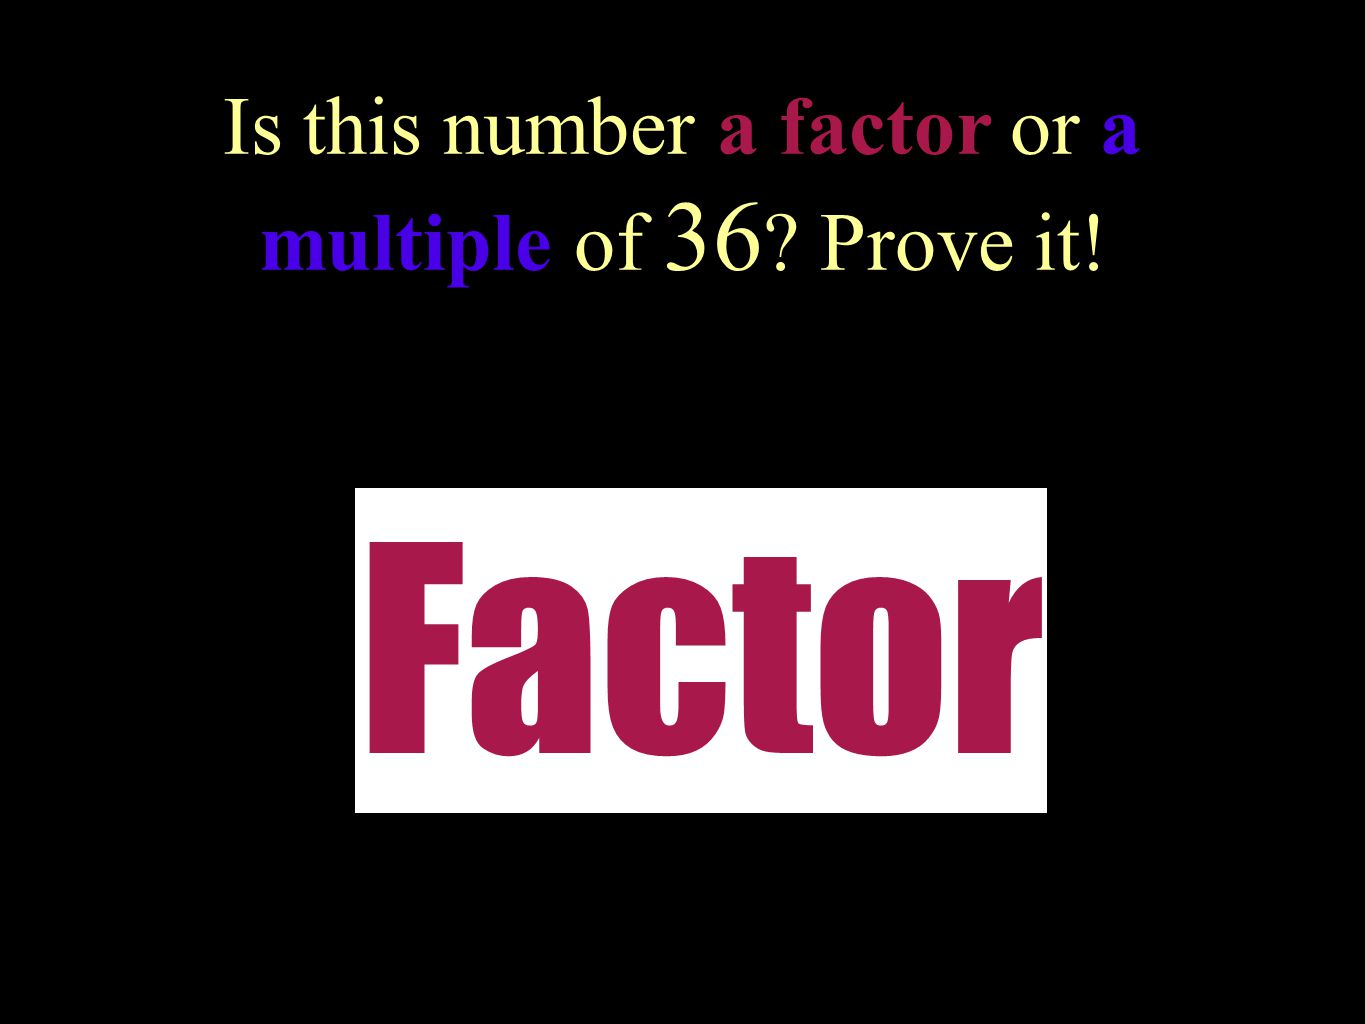 Is this number a factor or a multiple of 36 Prove it!